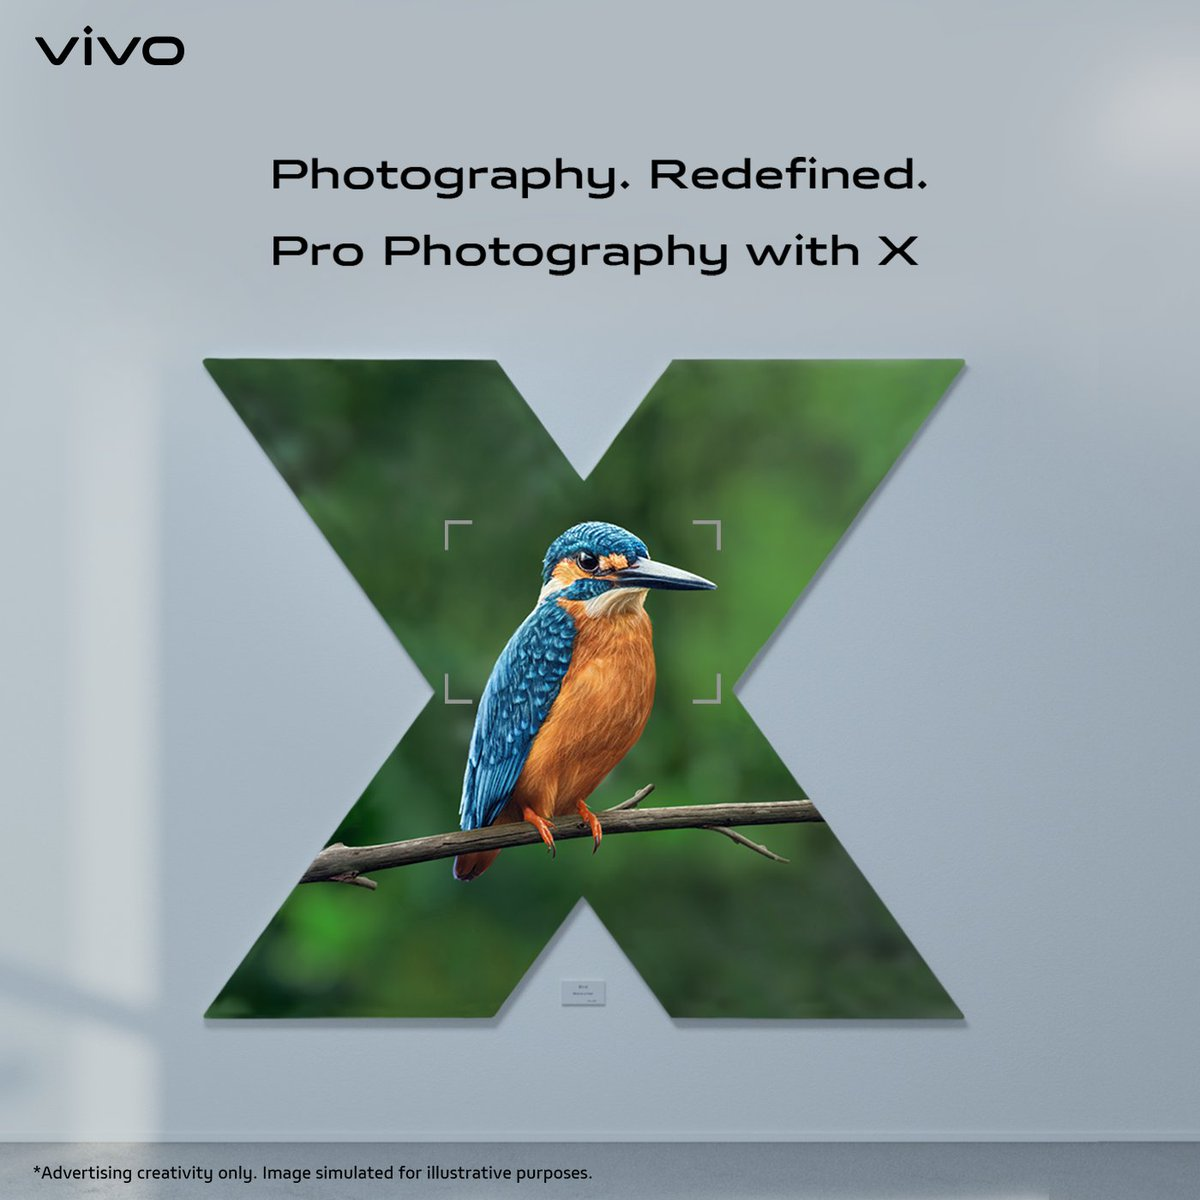 #PhotographyRedefined for all Xtremes with #vivoX50Series. Prepare to capture the subject in absolute clarity, whether it be far, tiny or in really low light. #ComingSoon https://t.co/7fKqKM1RMw